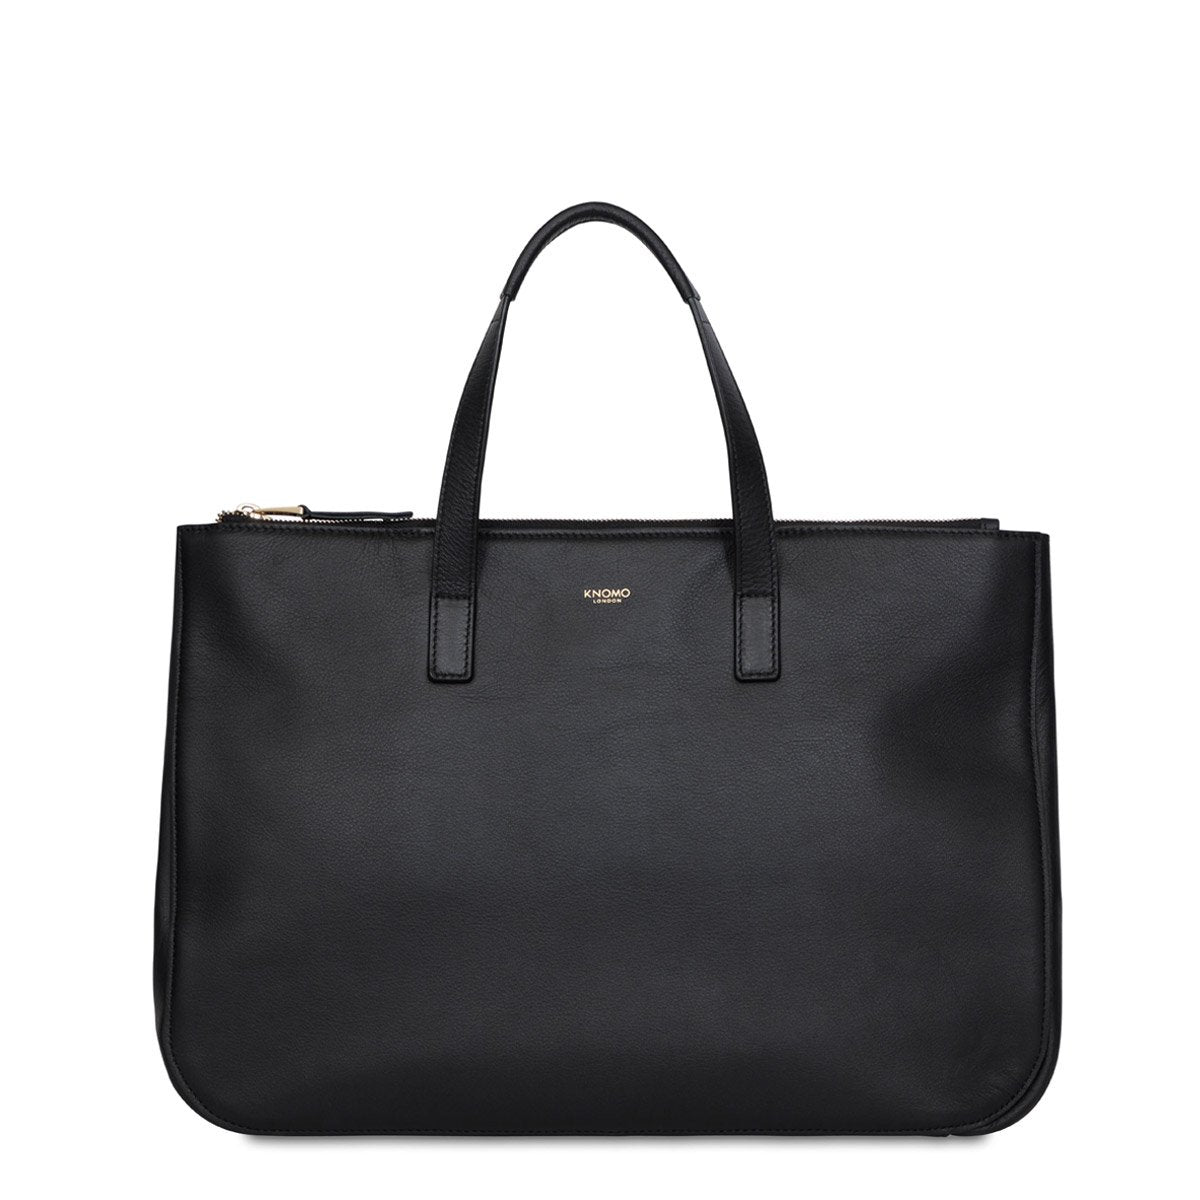 Mayfair luxe derby leather tote 14  120 206 blk front